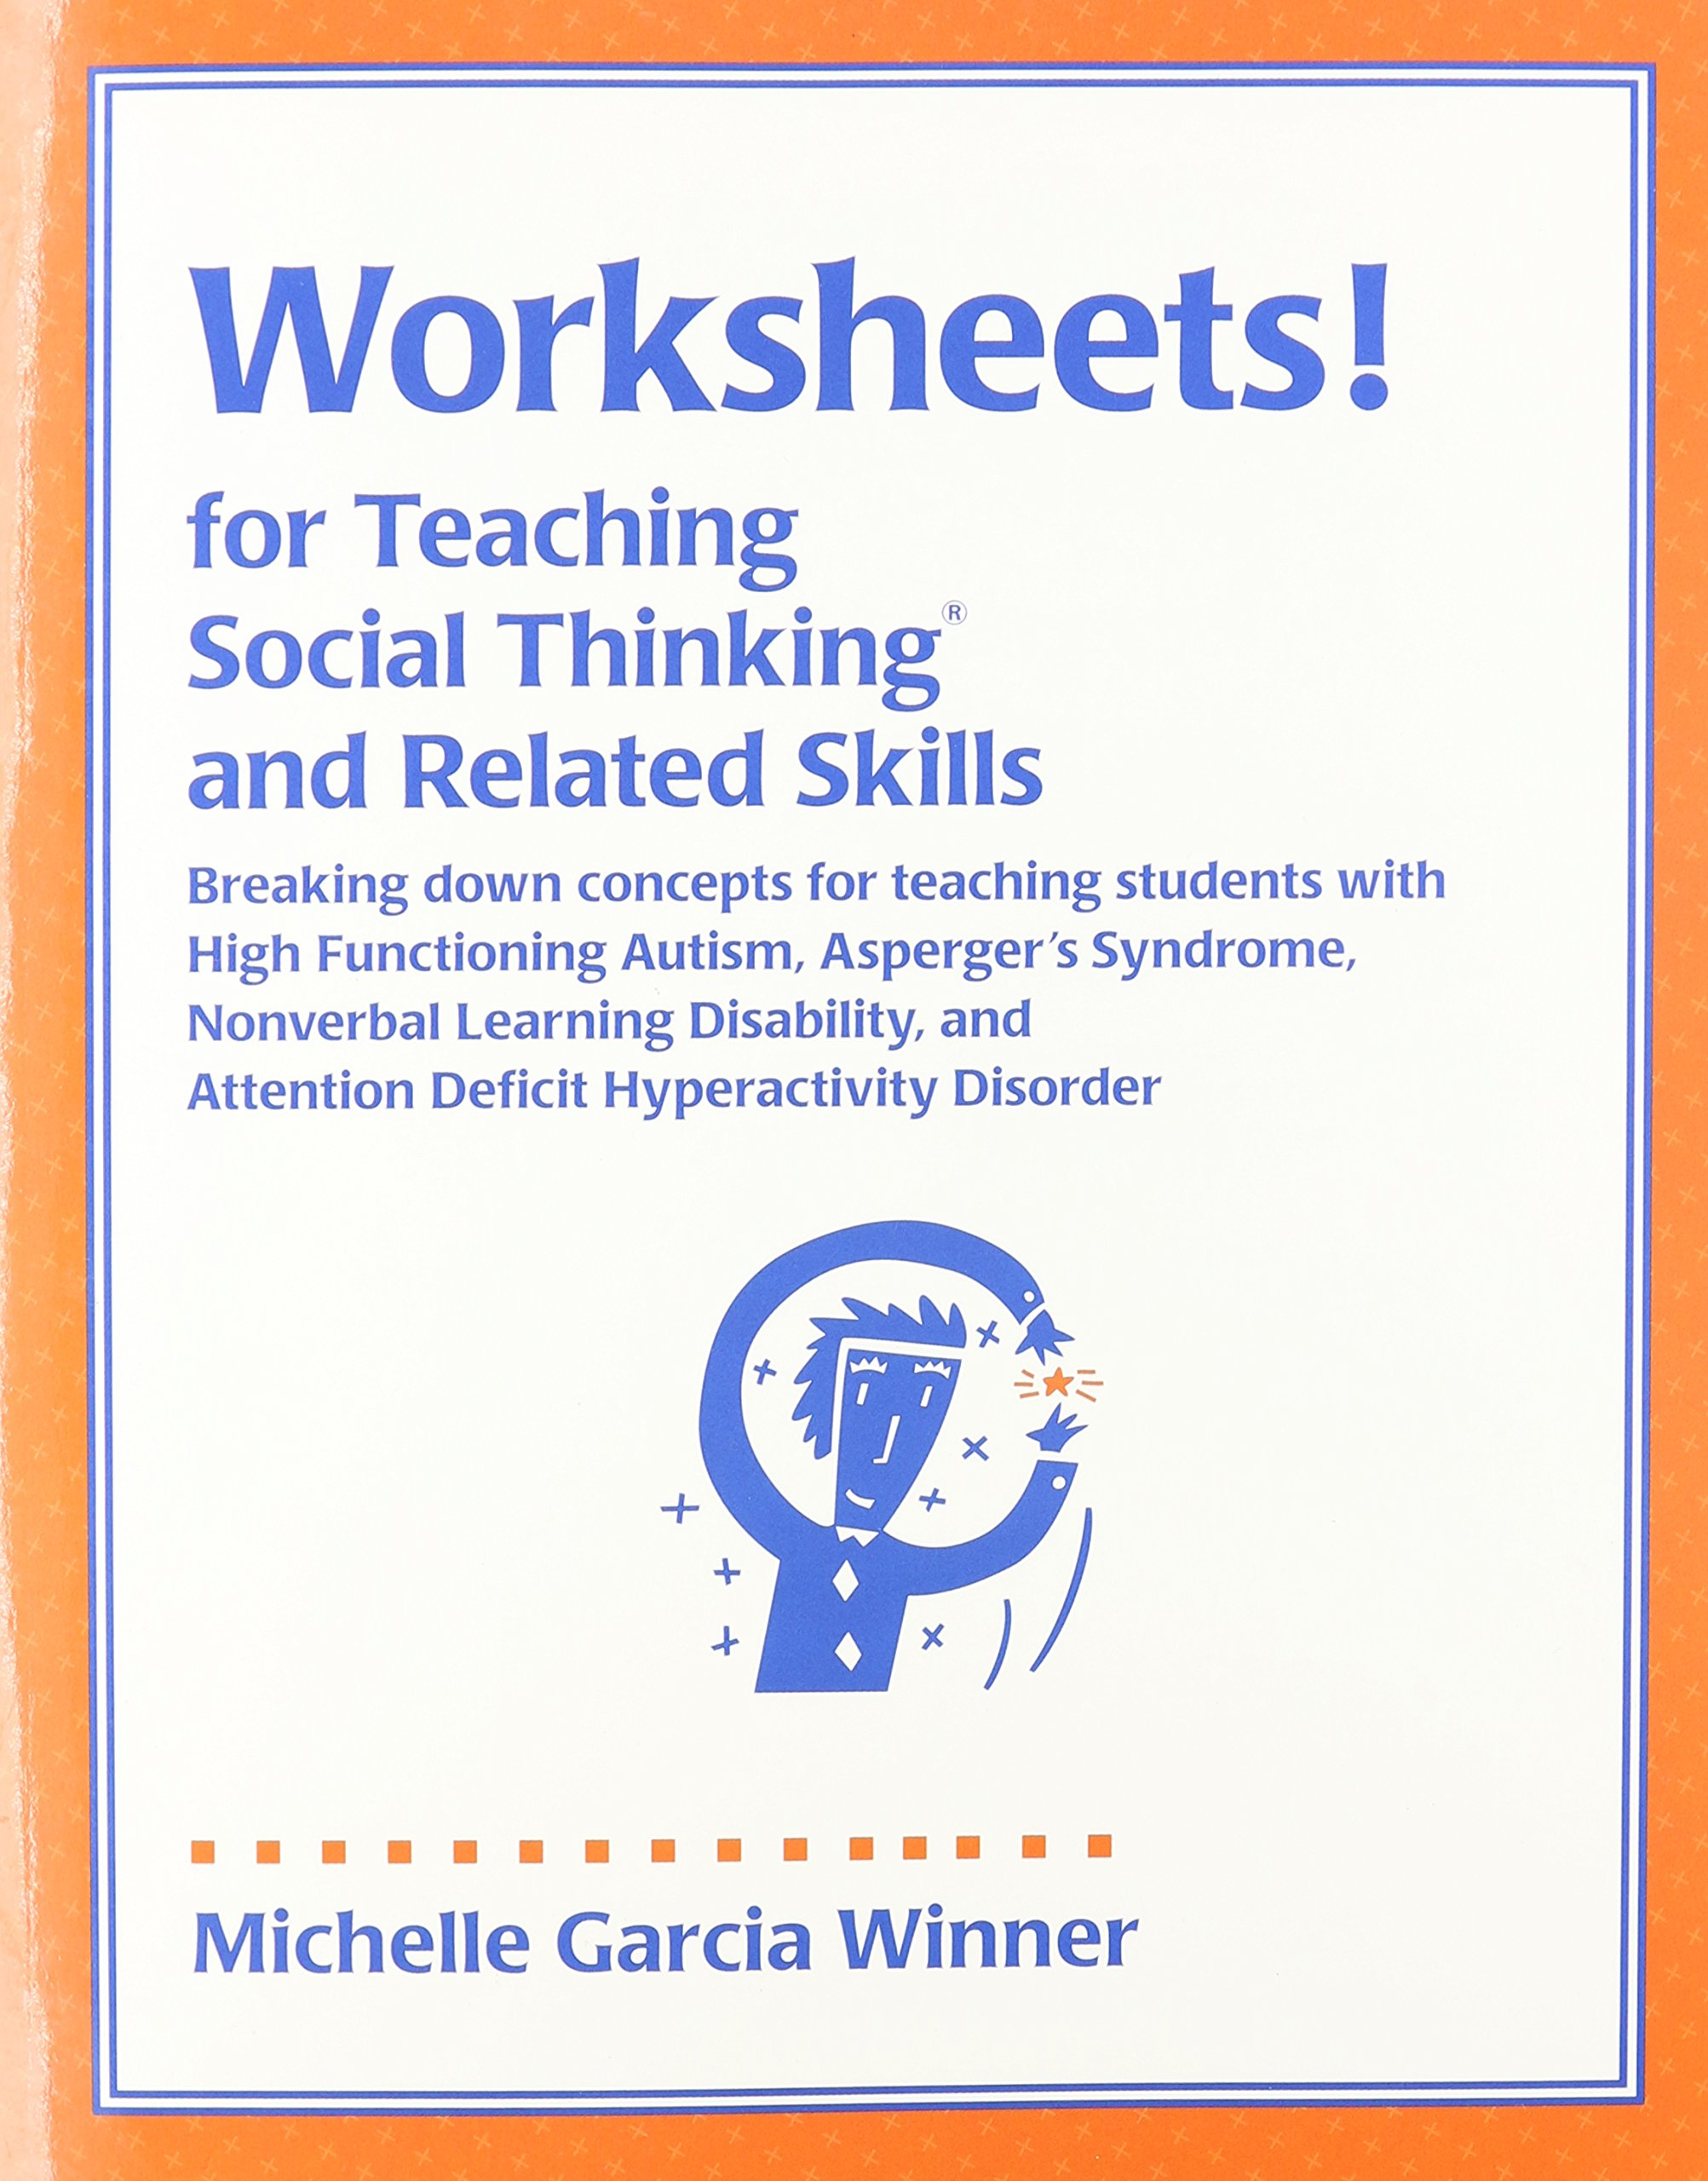 Worksheets Social Thinking Worksheets worksheets for teaching social thinking and related skills amazon co uk michelle garcia winner 9780970132031 books